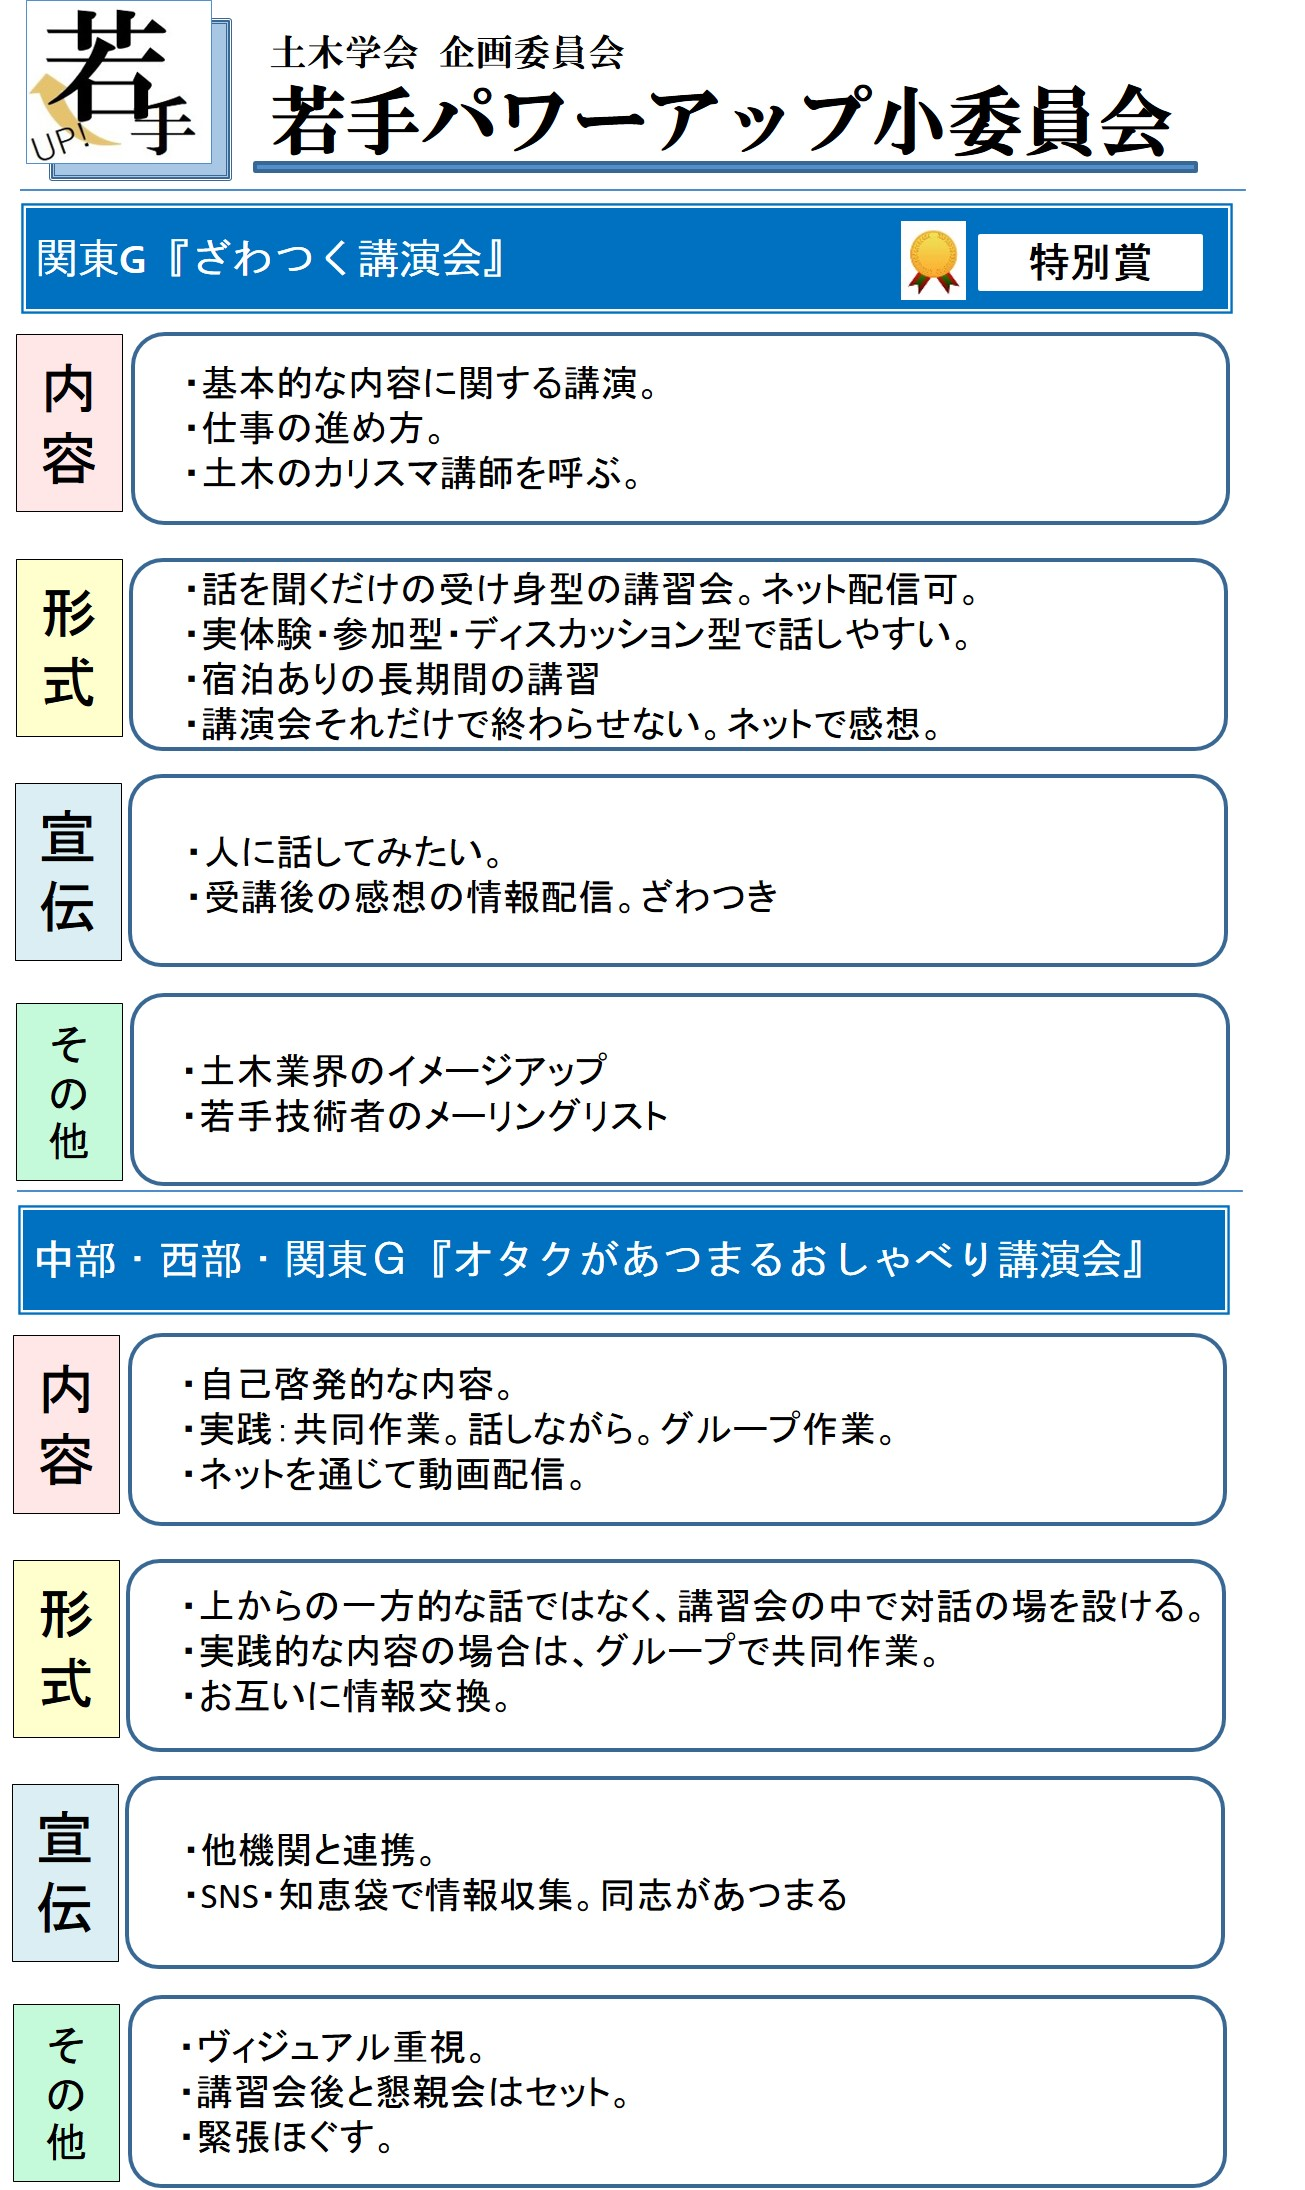 http://committees.jsce.or.jp/kikaku03/system/files/wakateactivity-4.jpg